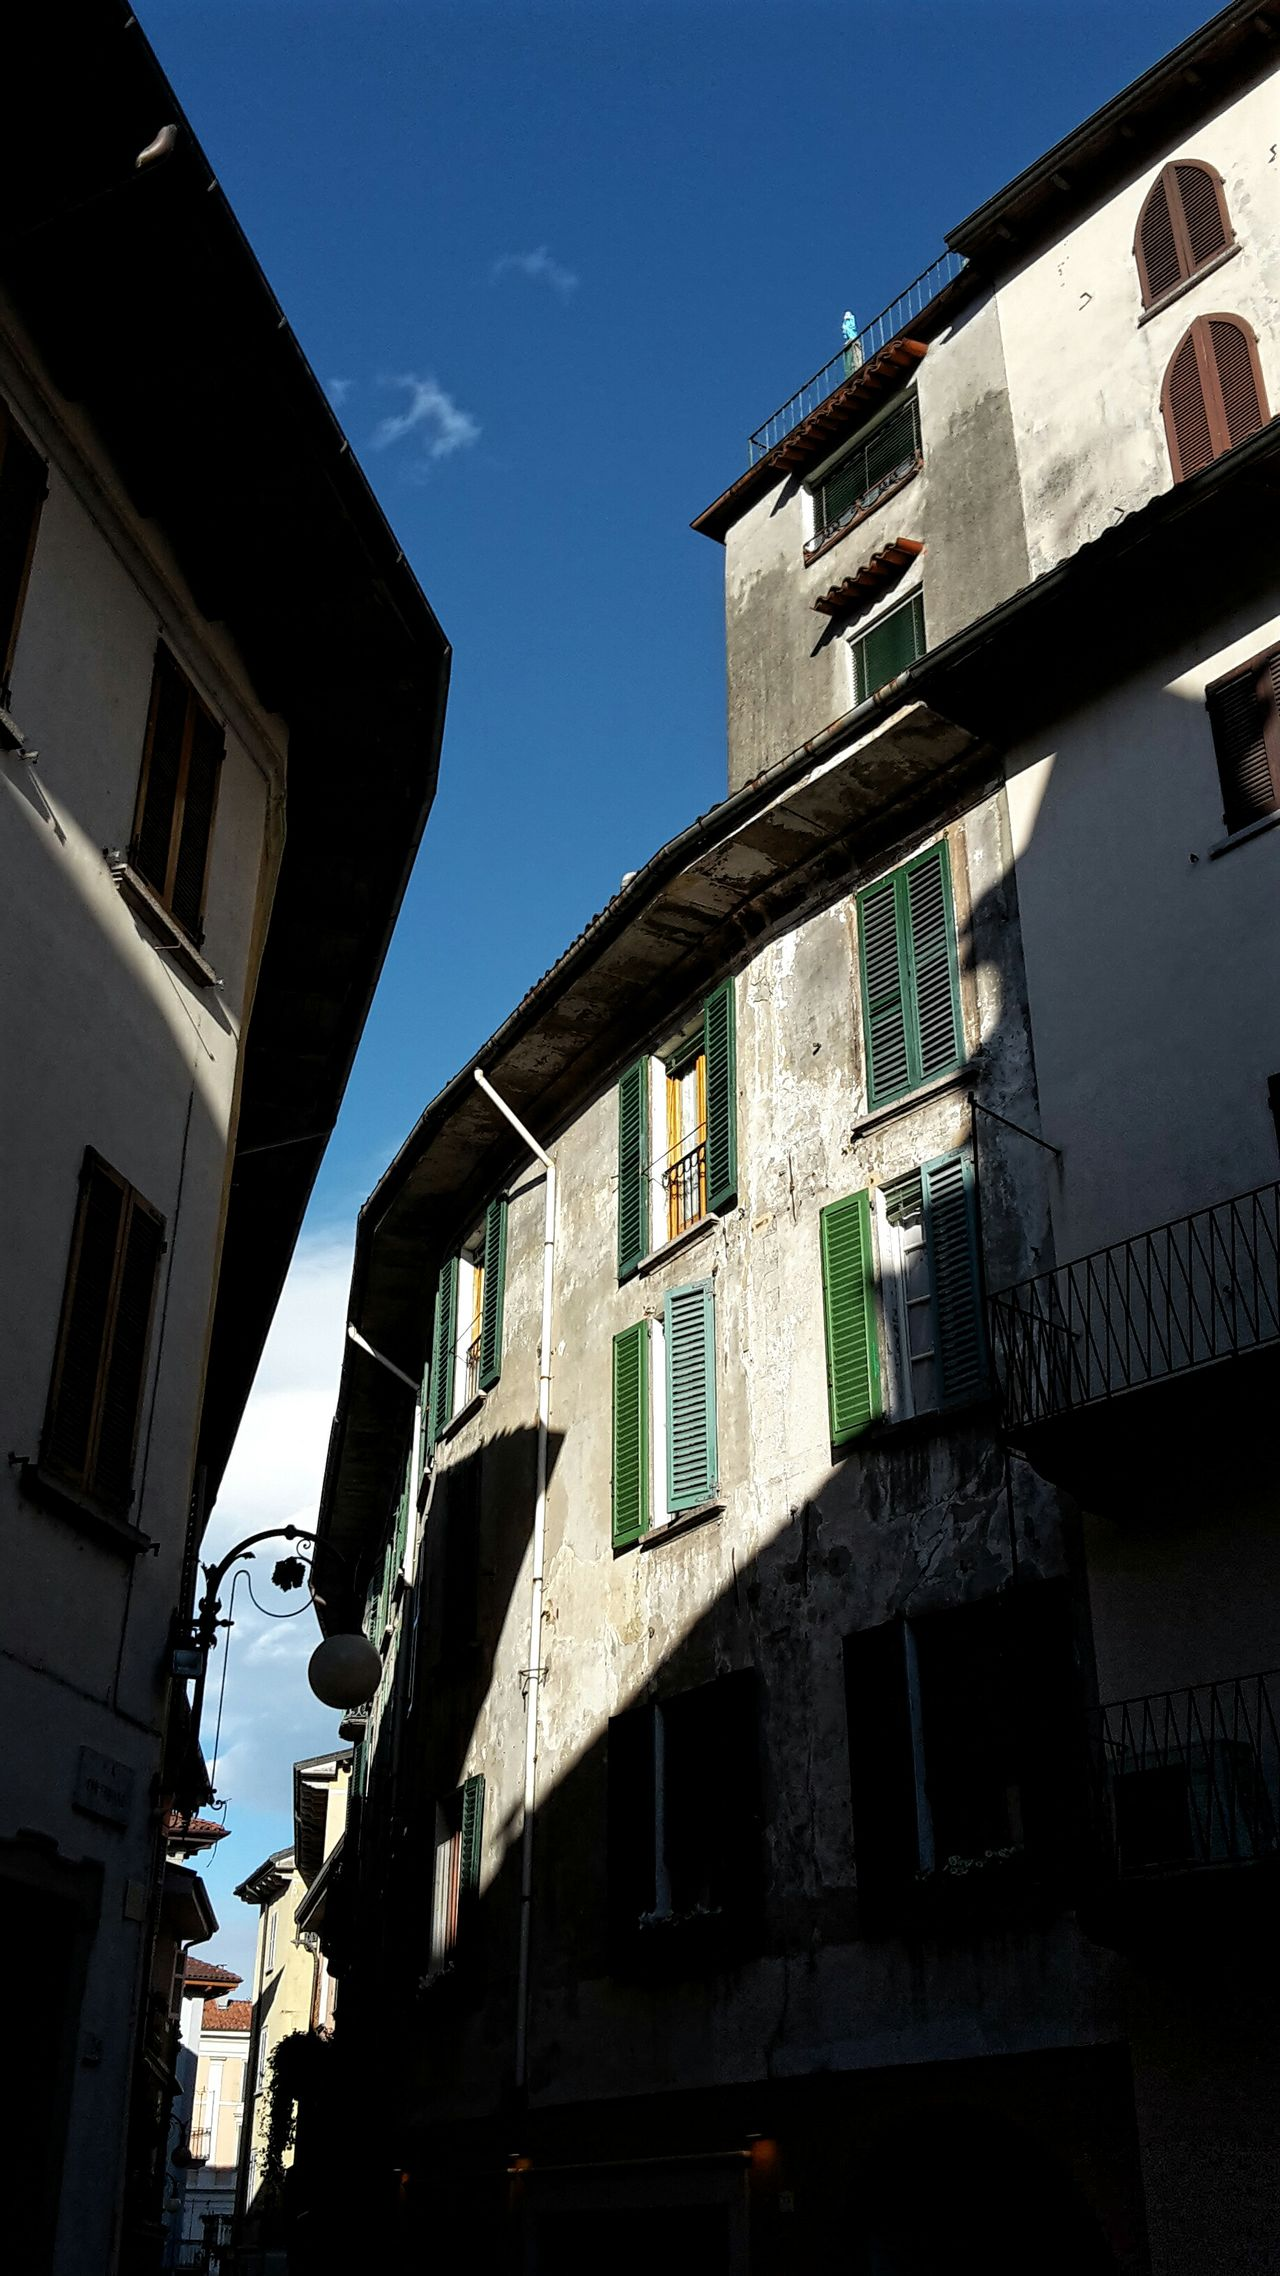 Street Photography Old Houses Green Windows Sunlight Blue Sky Clear Day From My Point Of View Shadows & Lights Building Exterior Low Angle View Façade Lake Country